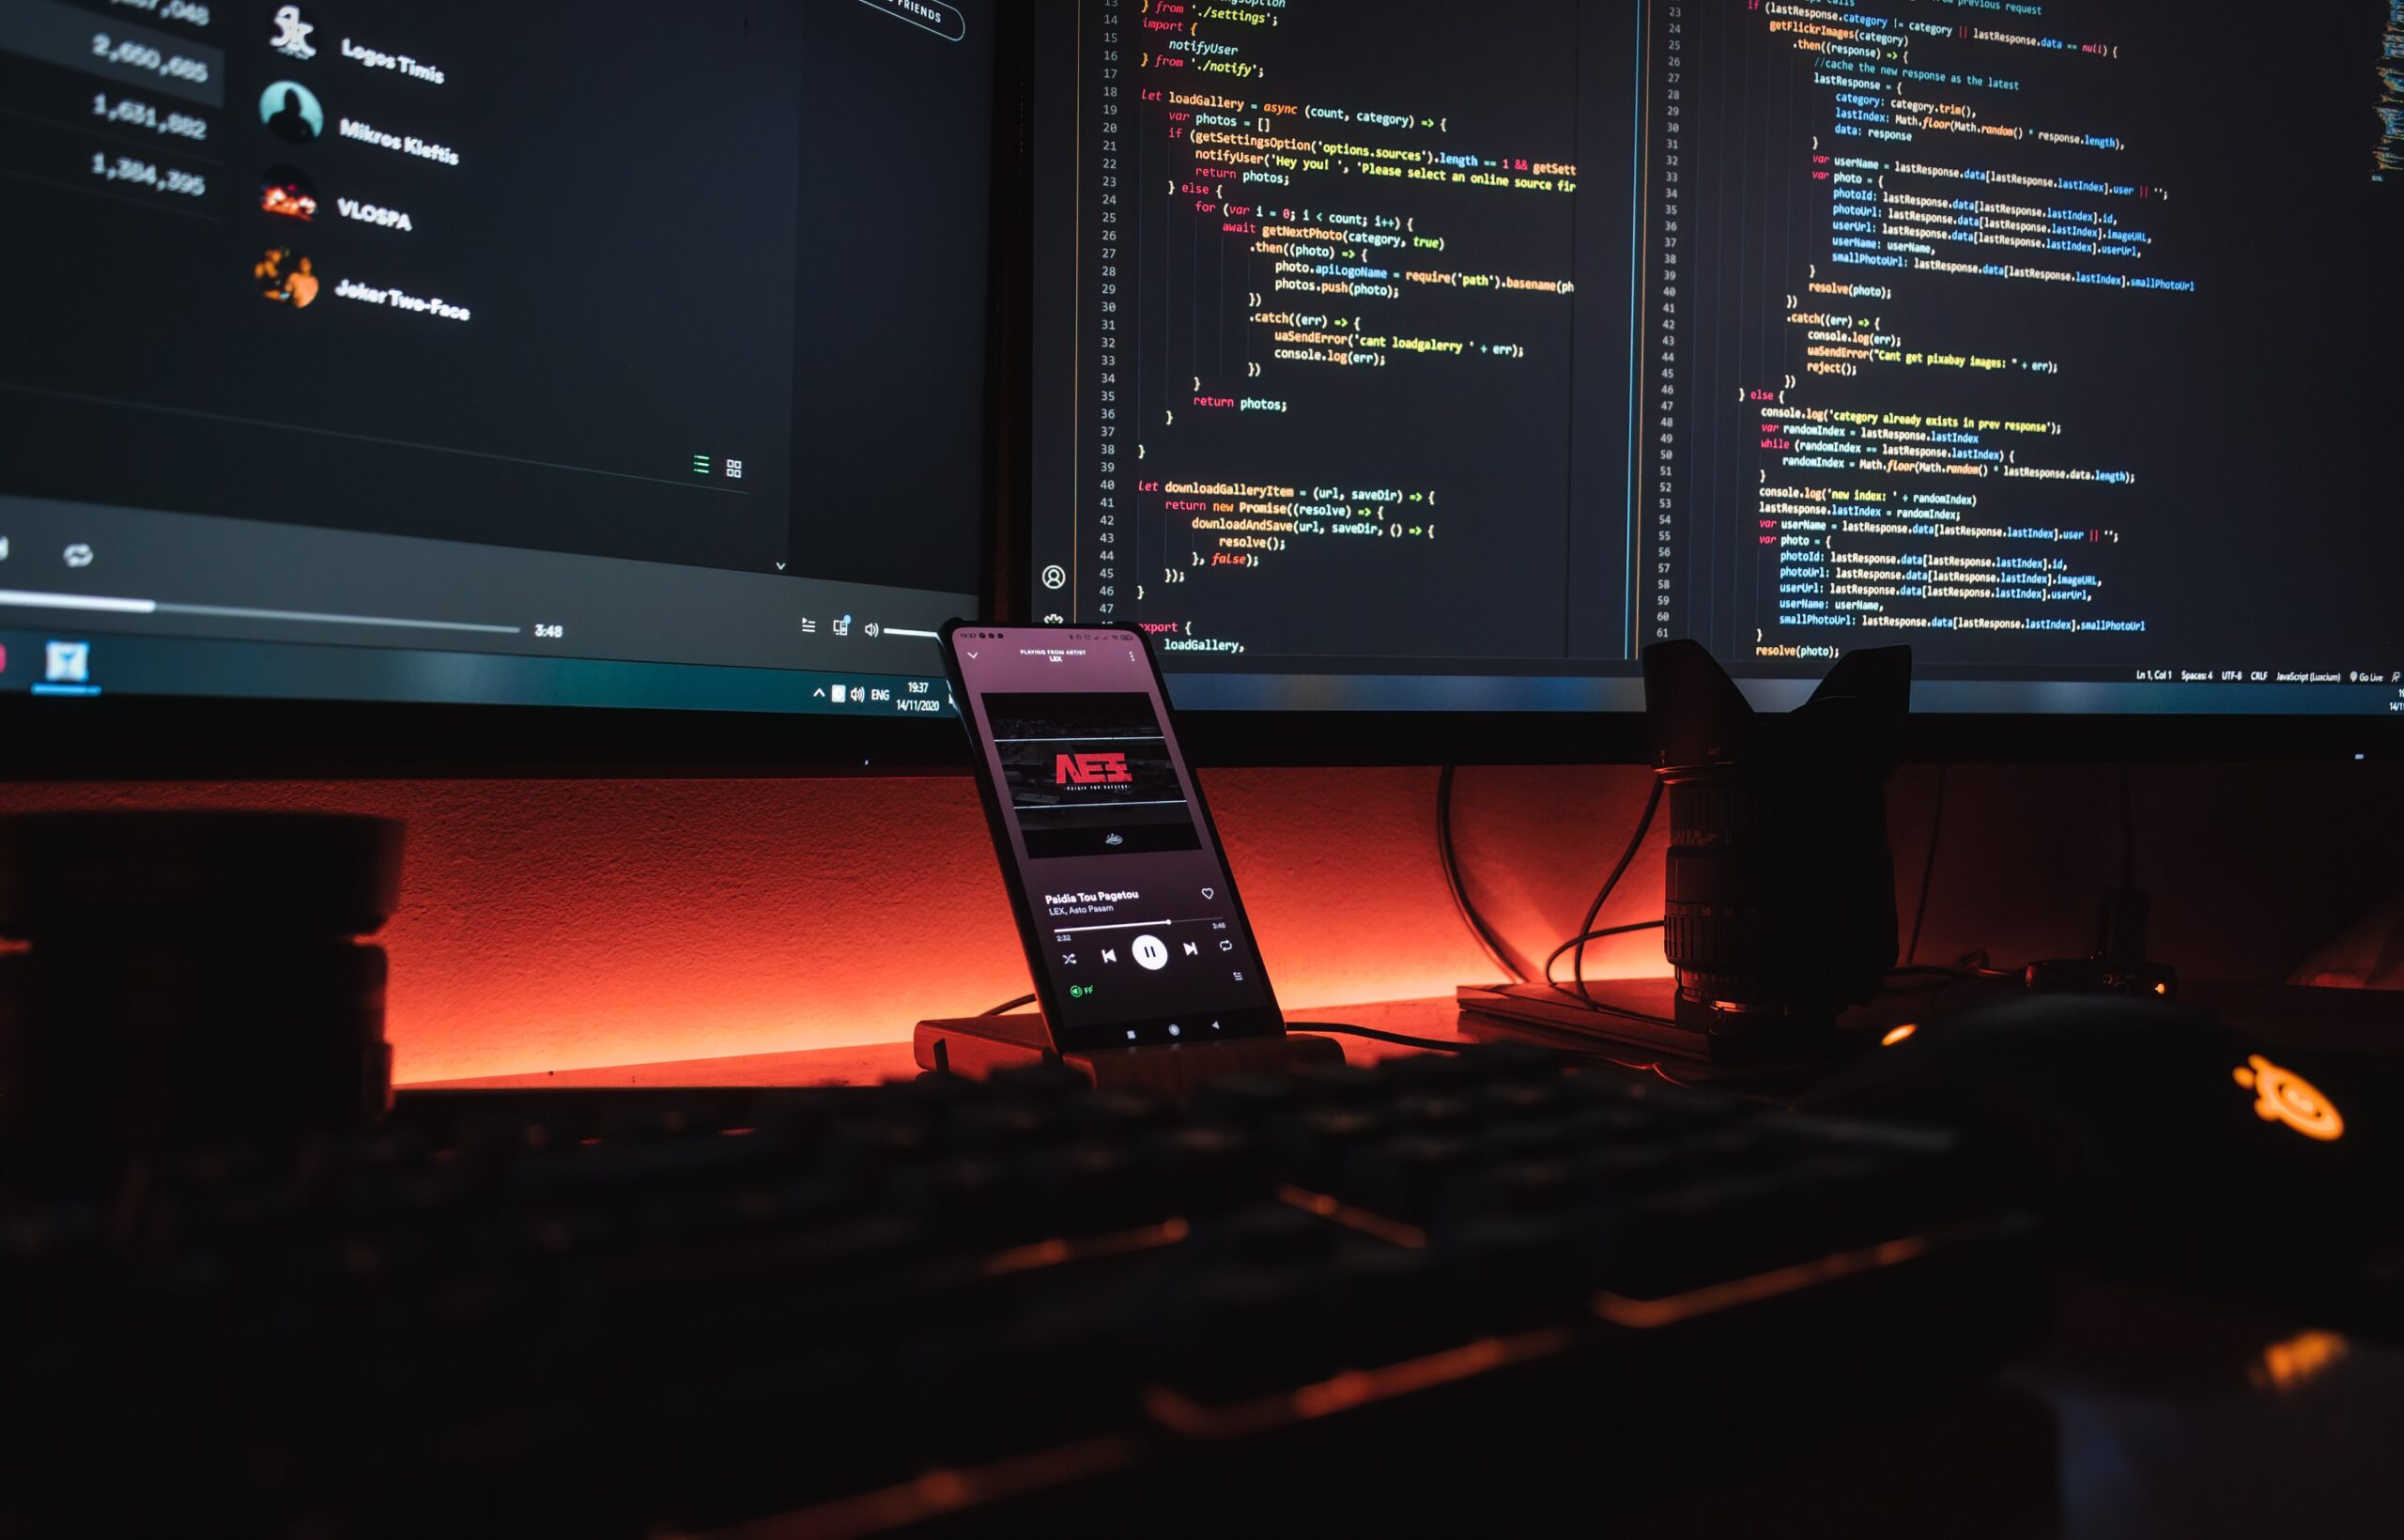 Why Software Development as a Career?